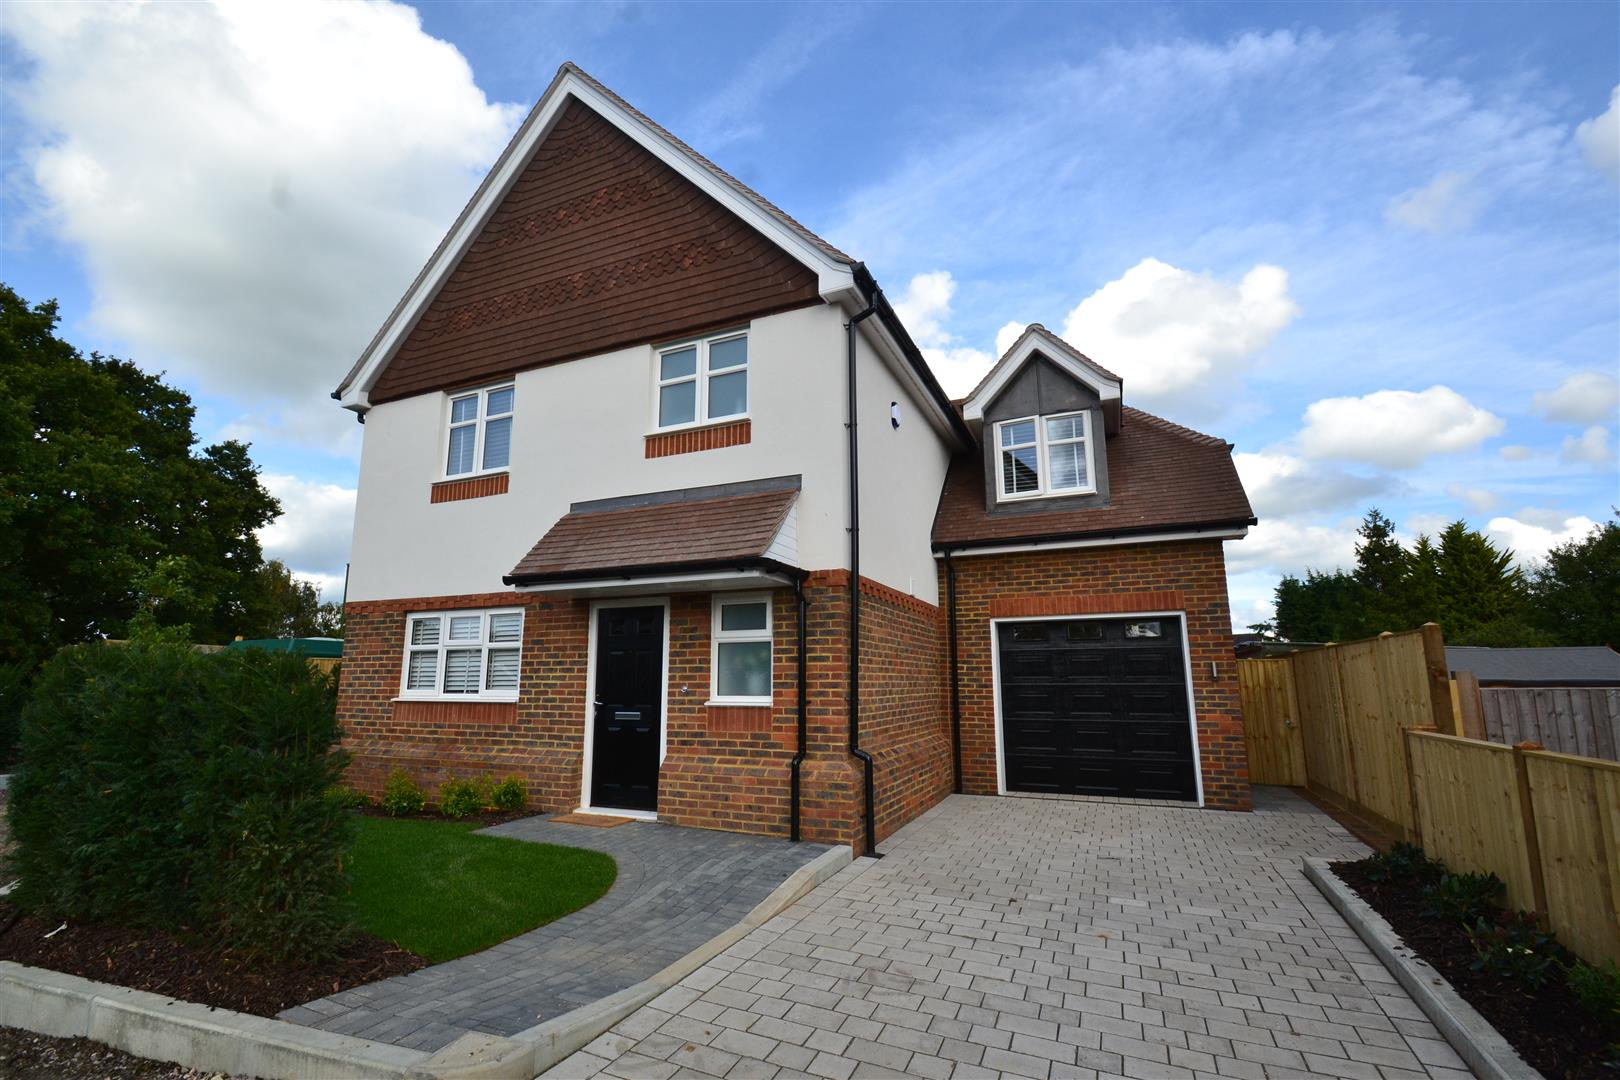 4 Bedrooms Detached House for sale in Campbell Close, Hookwood, Horley